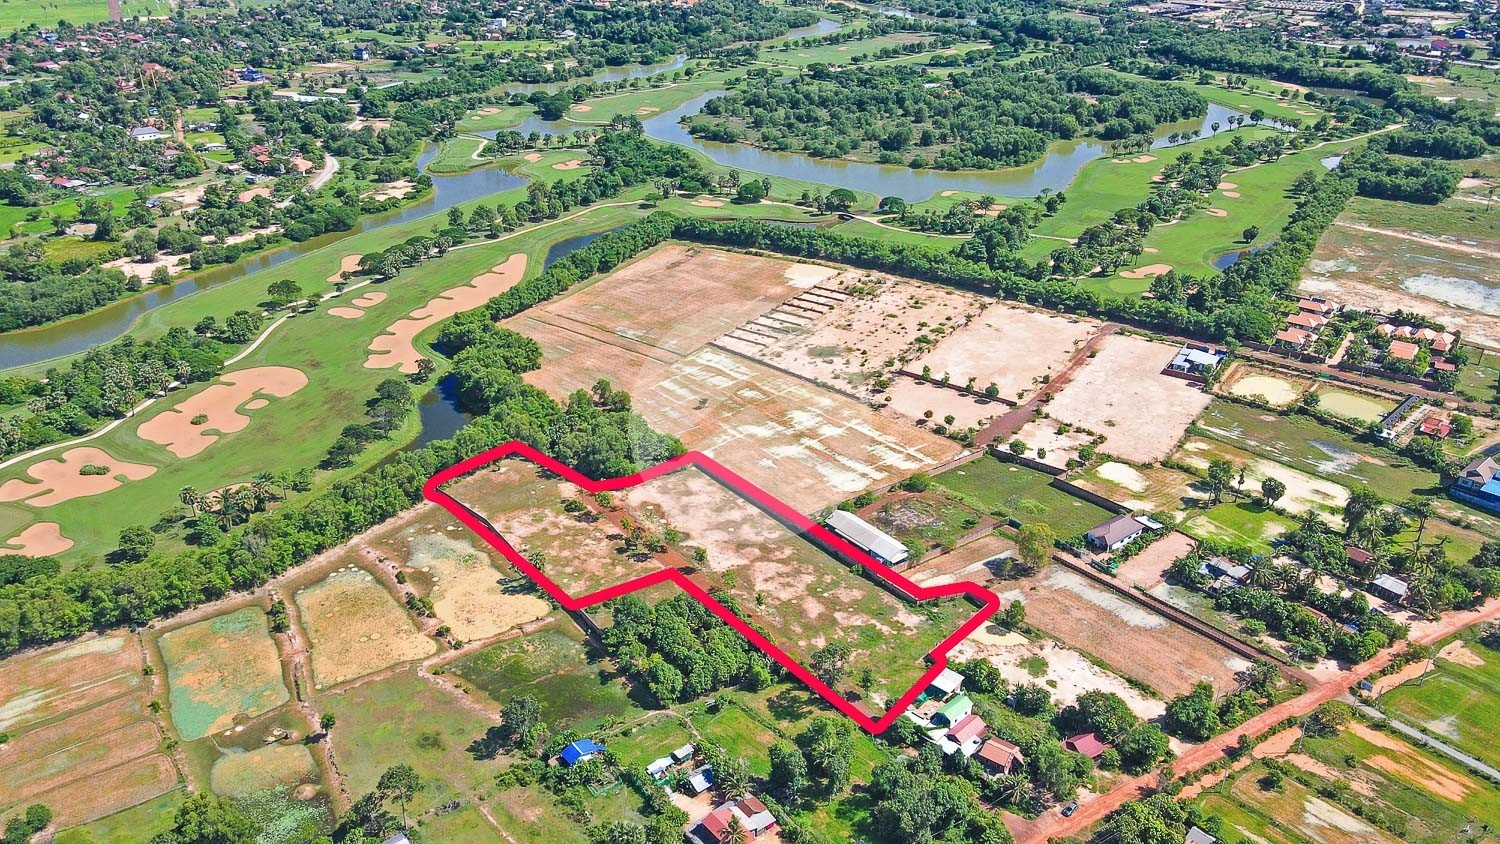 1 Hectare Land For Sale - Svay Dangkum, Siem Reap